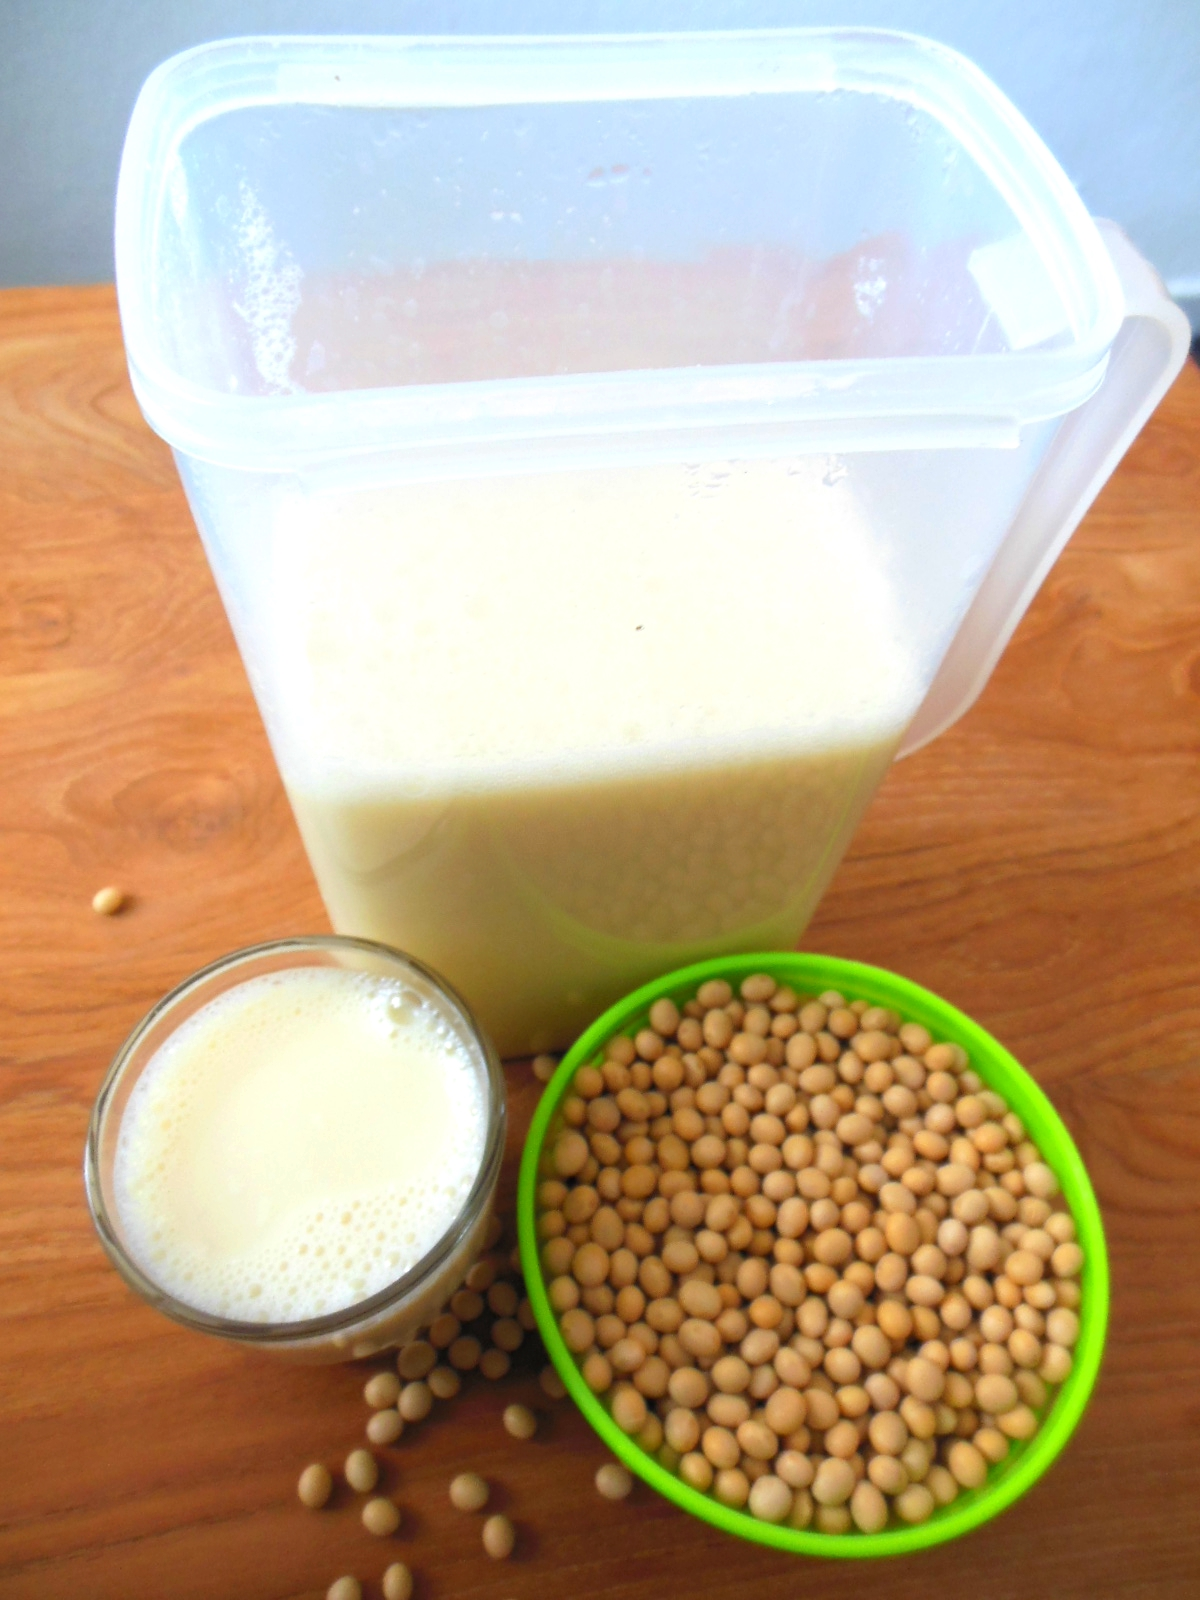 Very fresh natural homemade soy milk